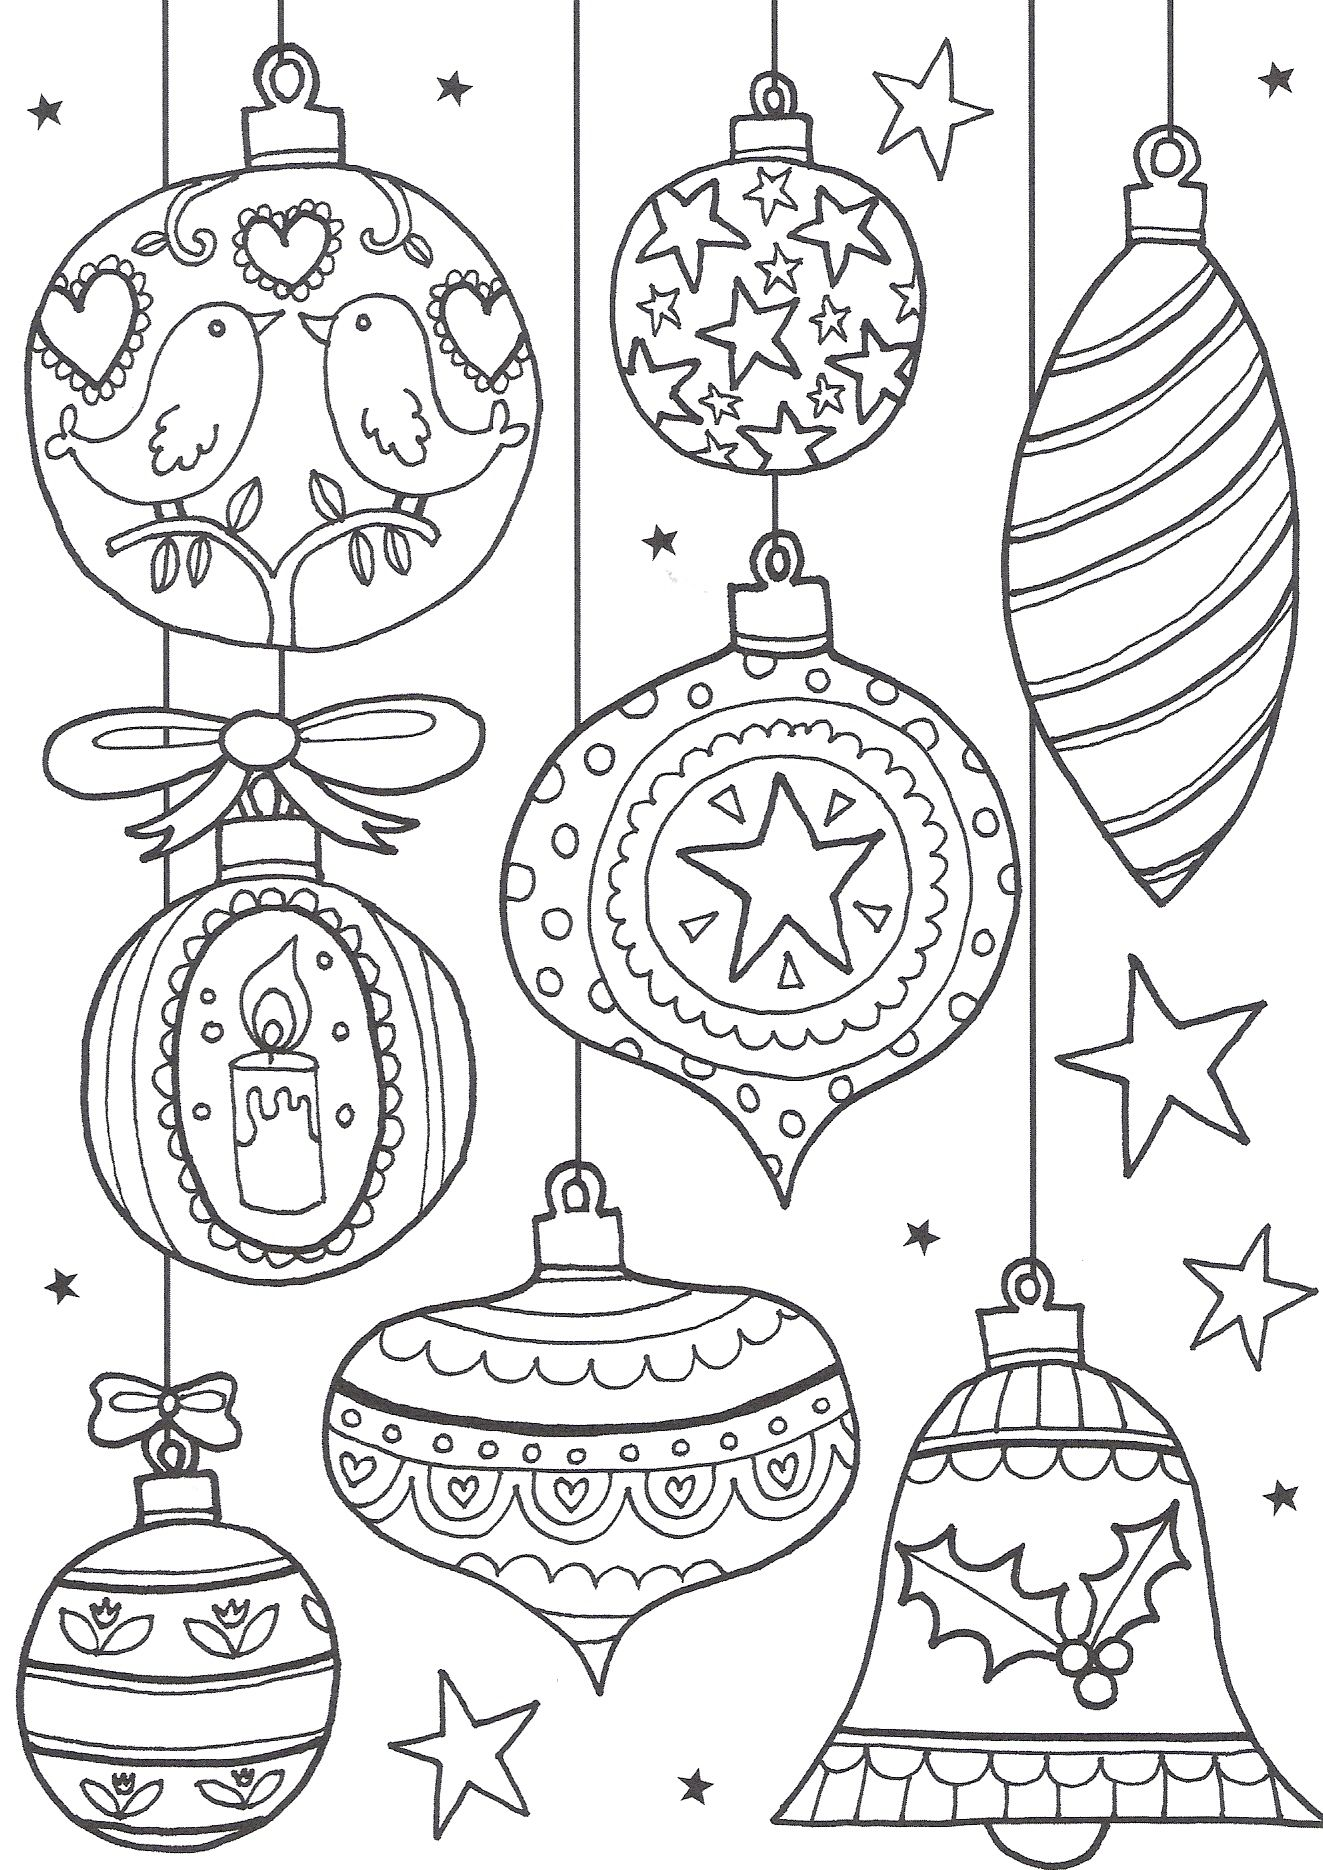 The Ultimate Roundup Of Free Christmas Colouring Pages For Adults And Teens Over 50 Festive Printables More